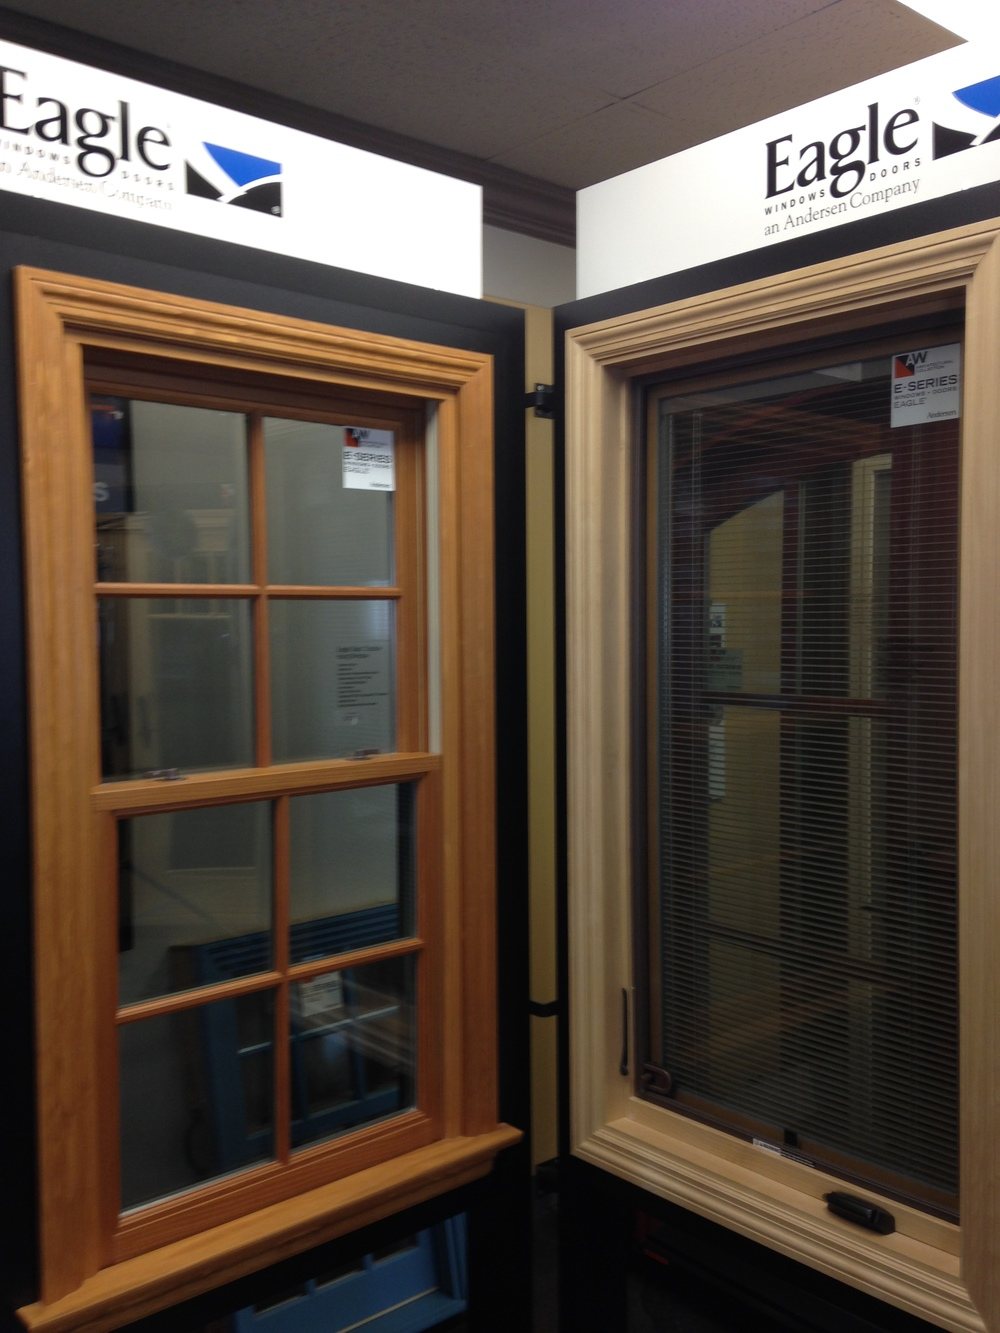 Choose Eagle Windows And Doors To Add A Very Custom Look To Your Home.